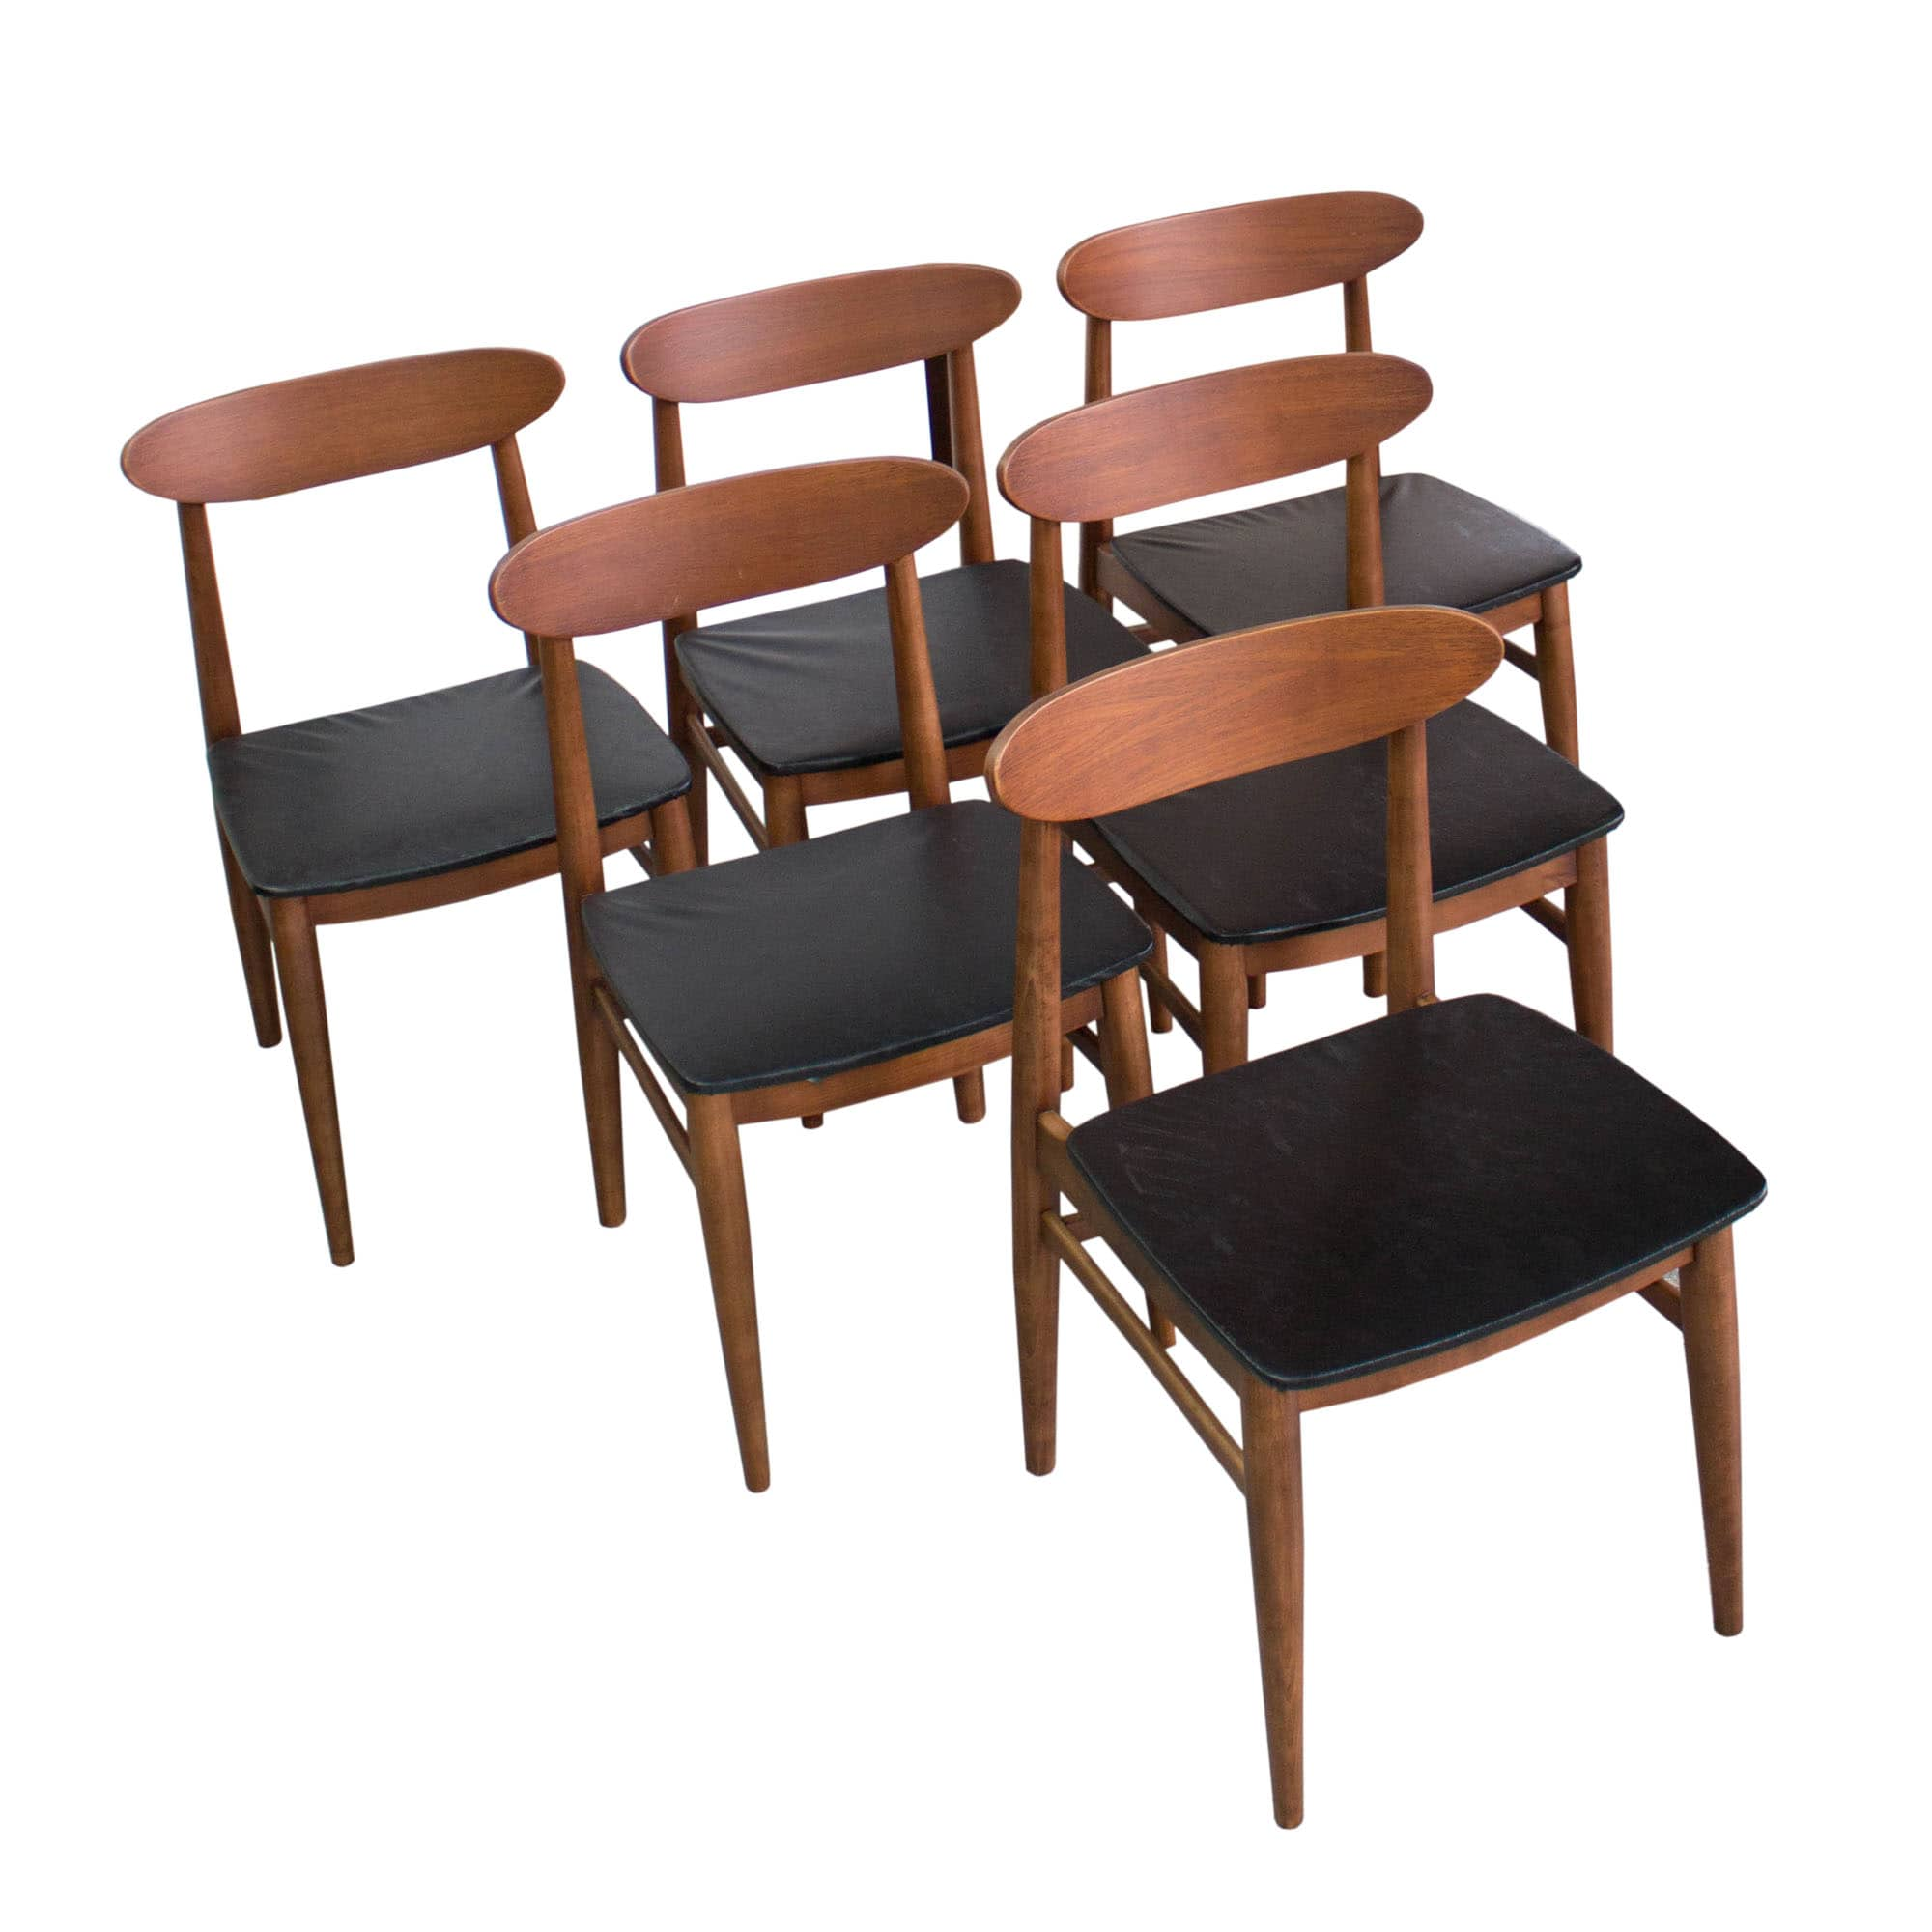 Set of 6 Danish teak dining chairs made in the 1960s  Mid